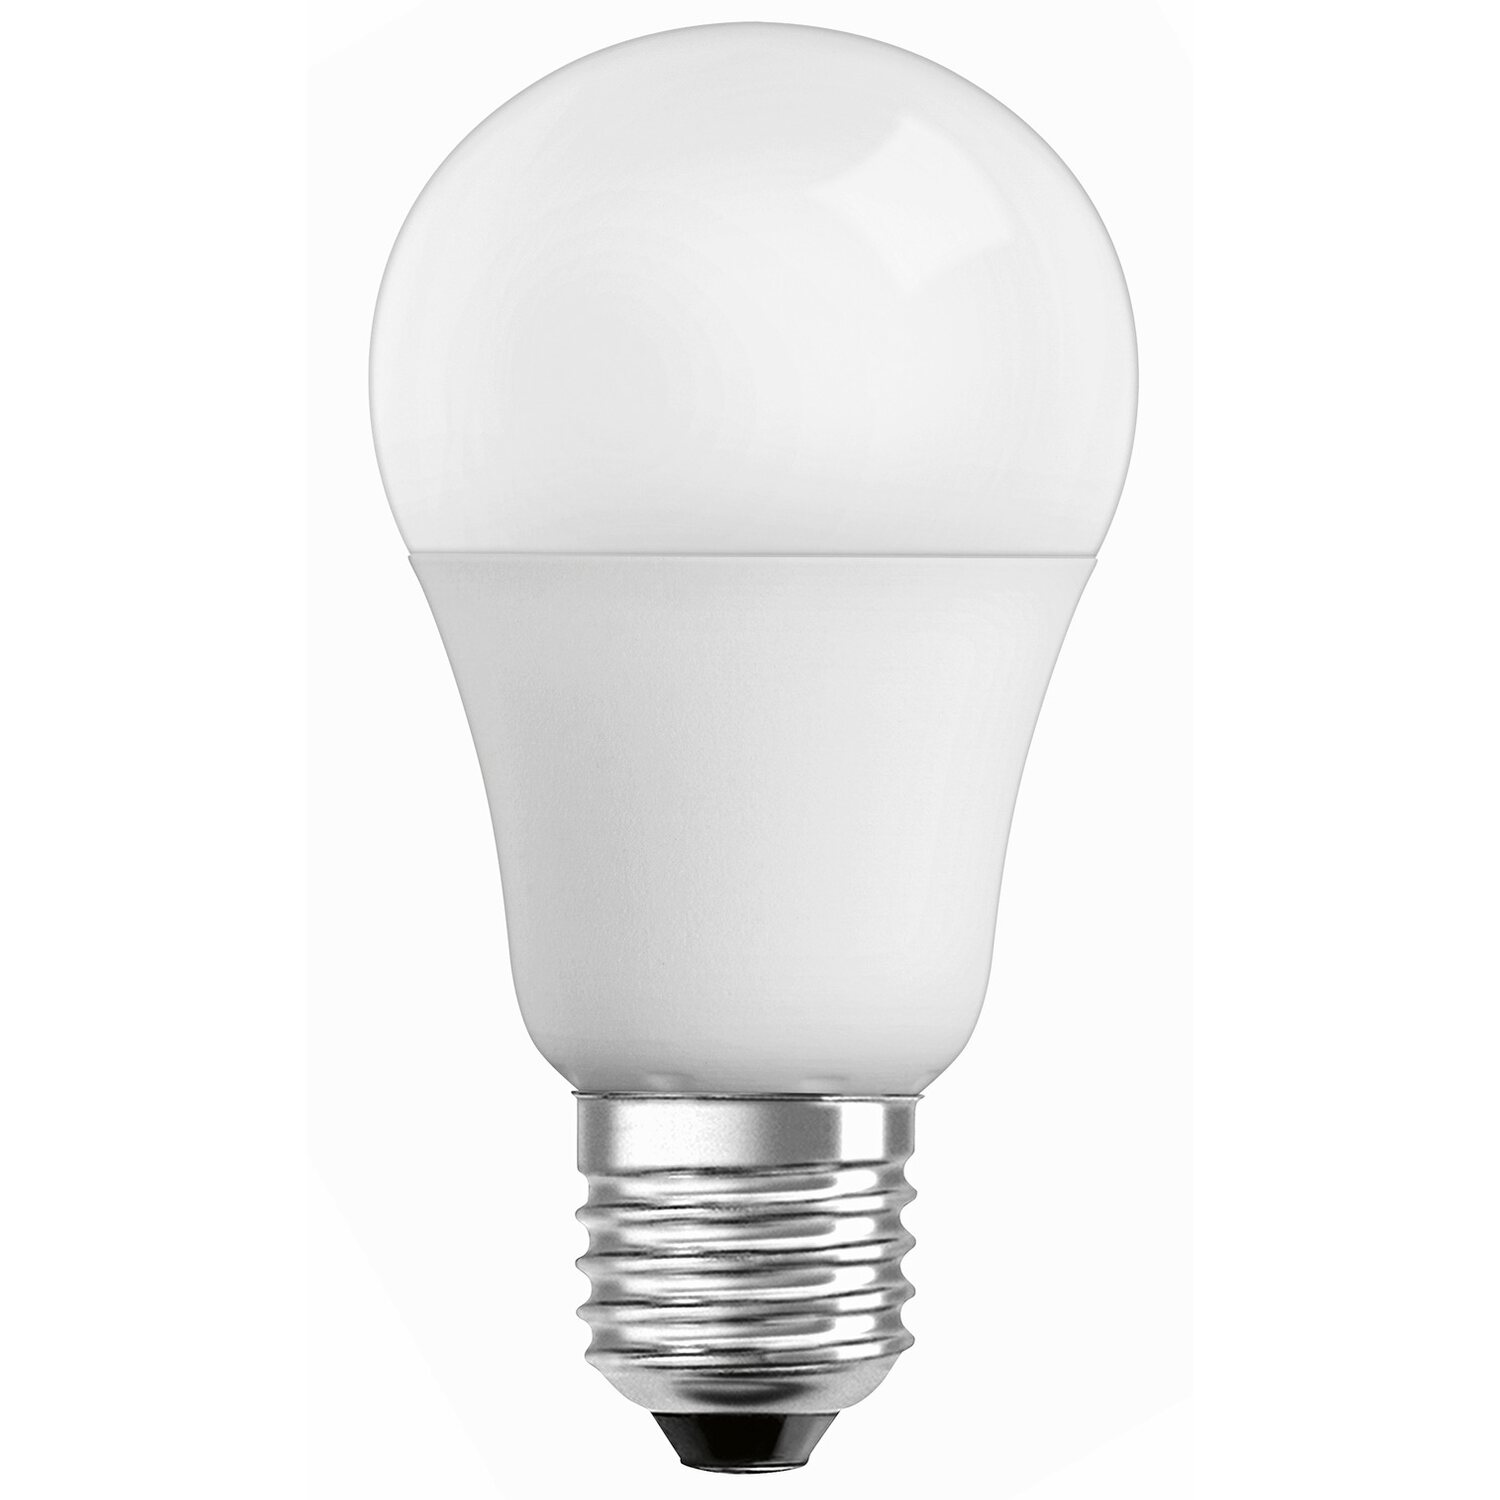 Osram E27 10W 827 LED-Lampe Superstar, dimmbar